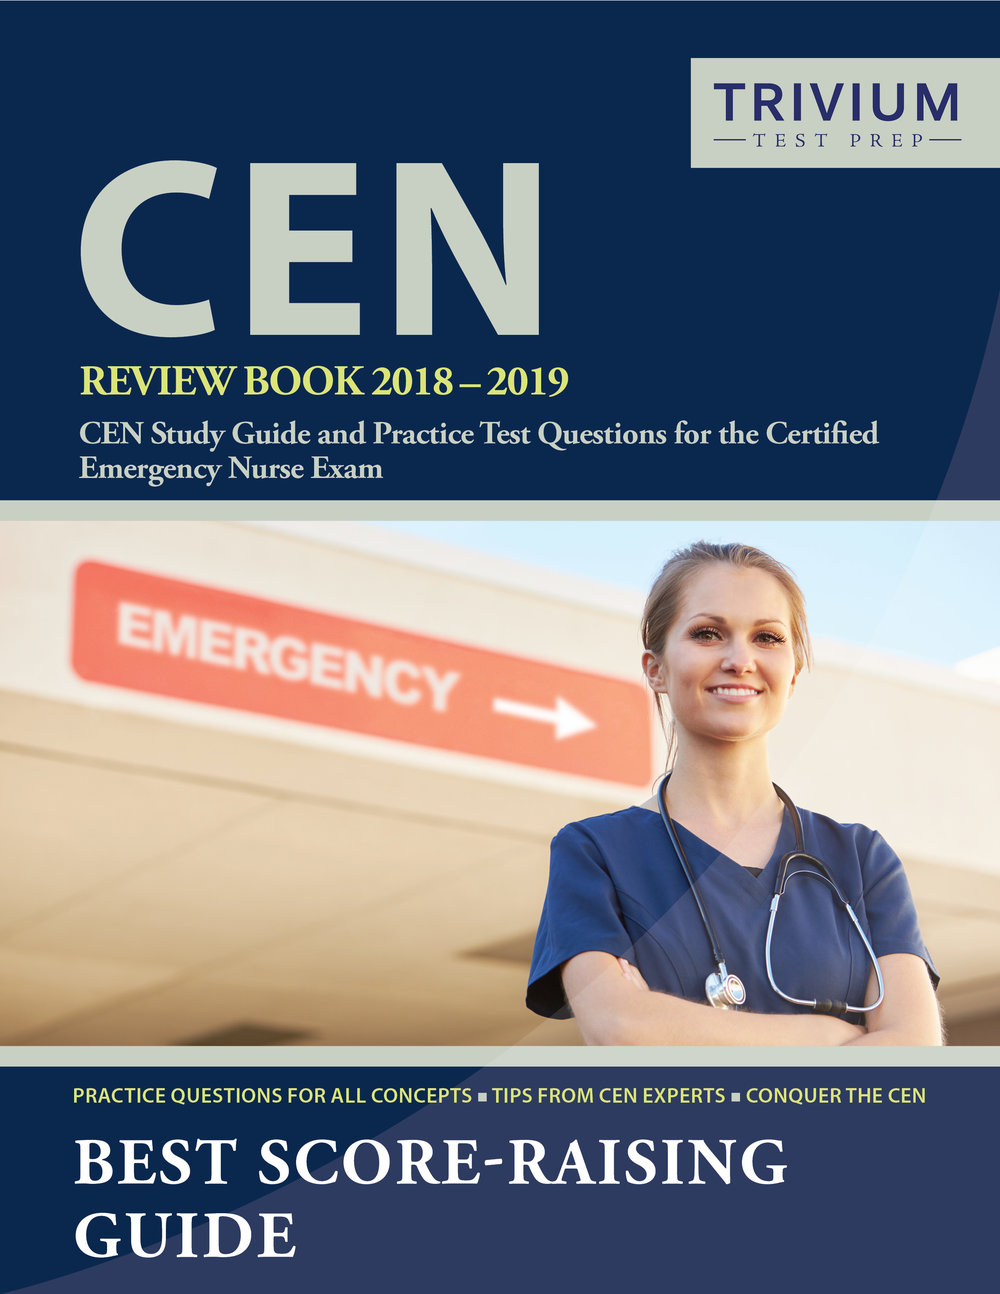 CEN Review Book Study Guide and Practice Test Questions